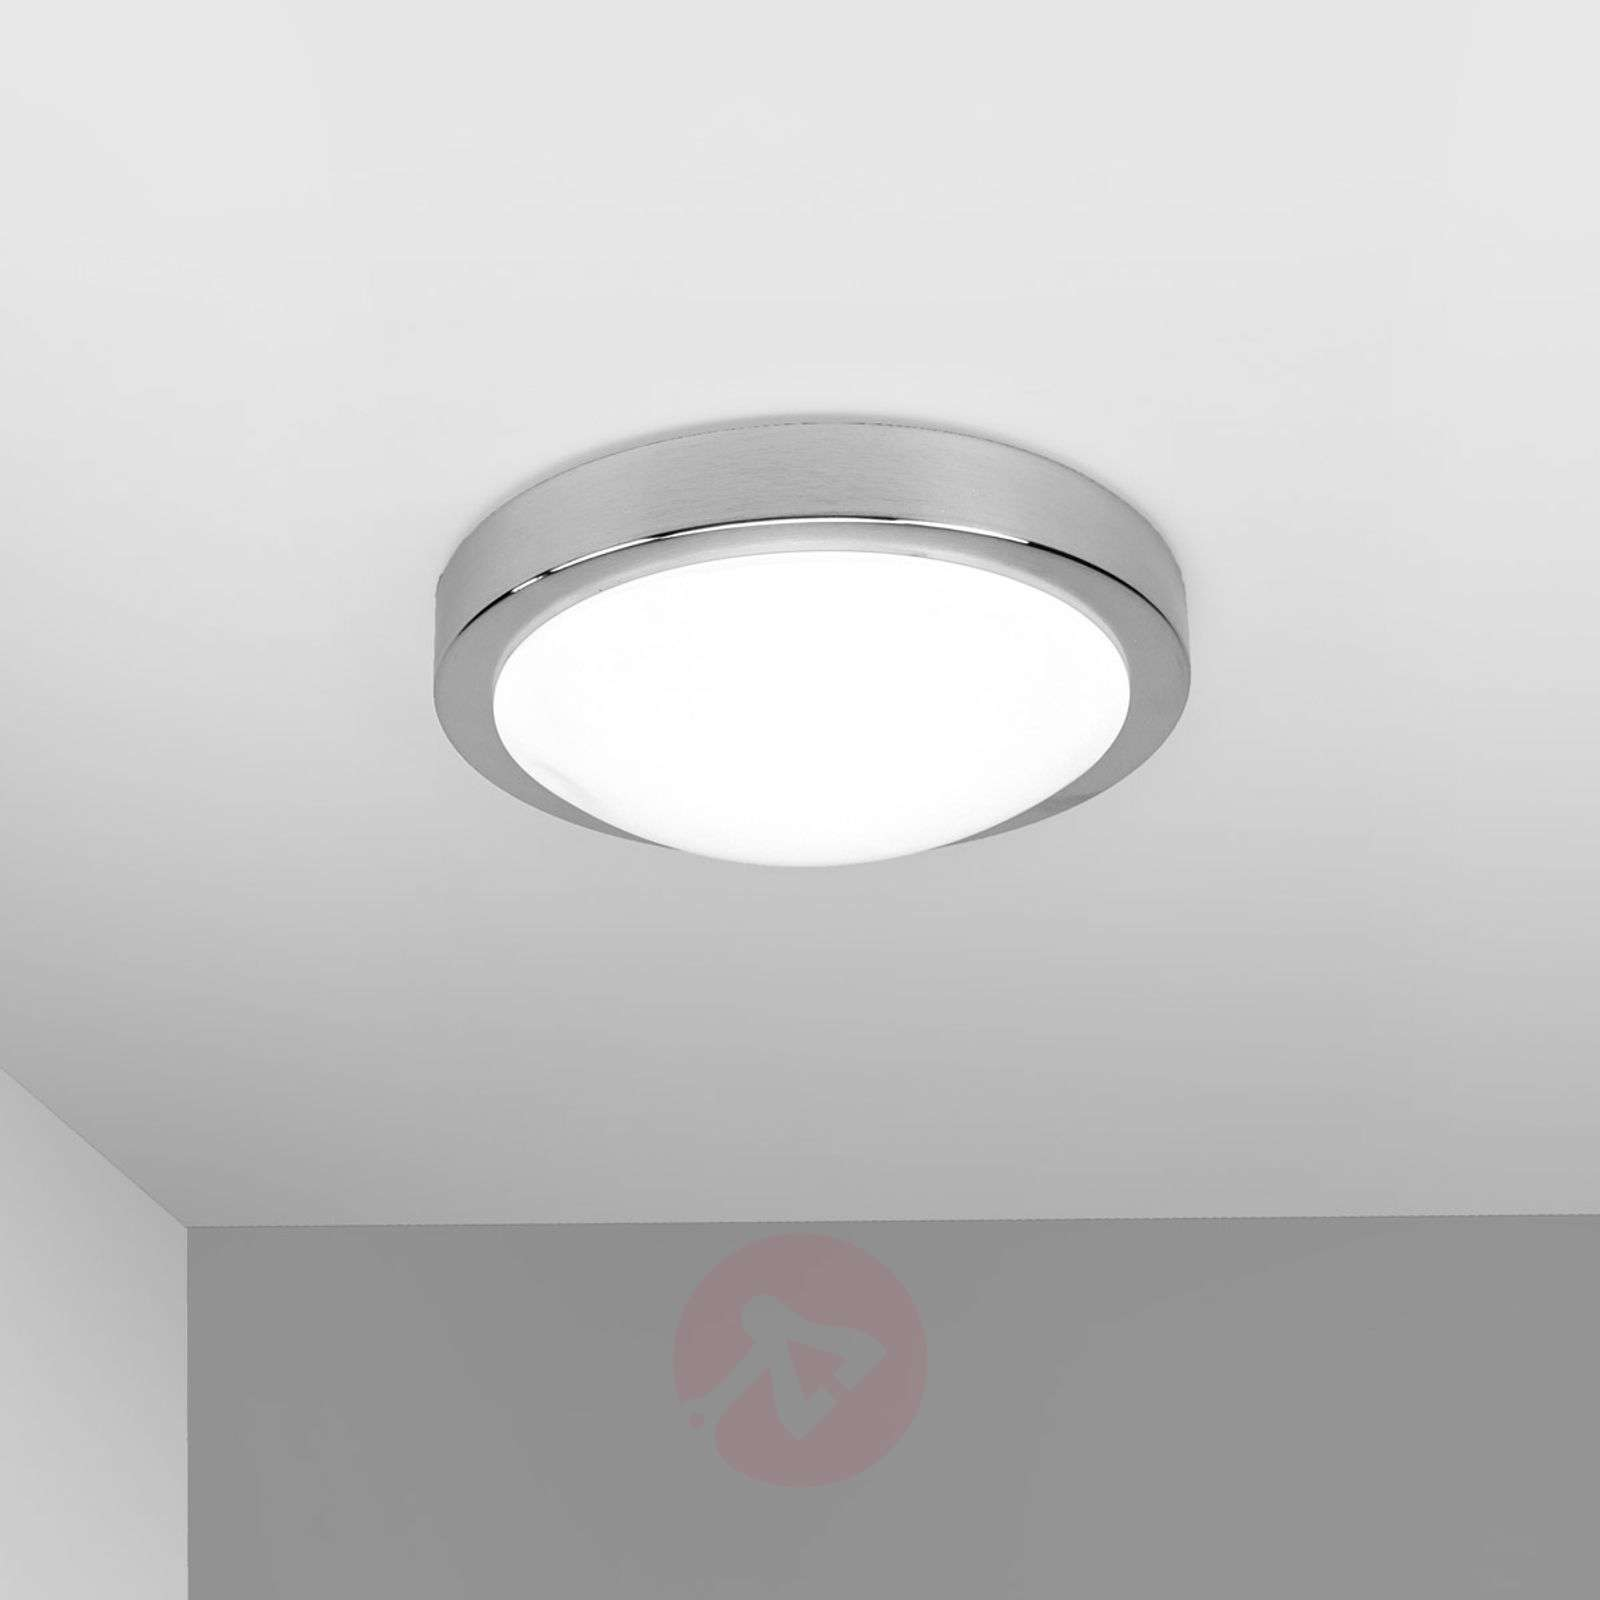 Compra l mpara de techo led aras para ba o aluminio for Lamparas de pared para bano